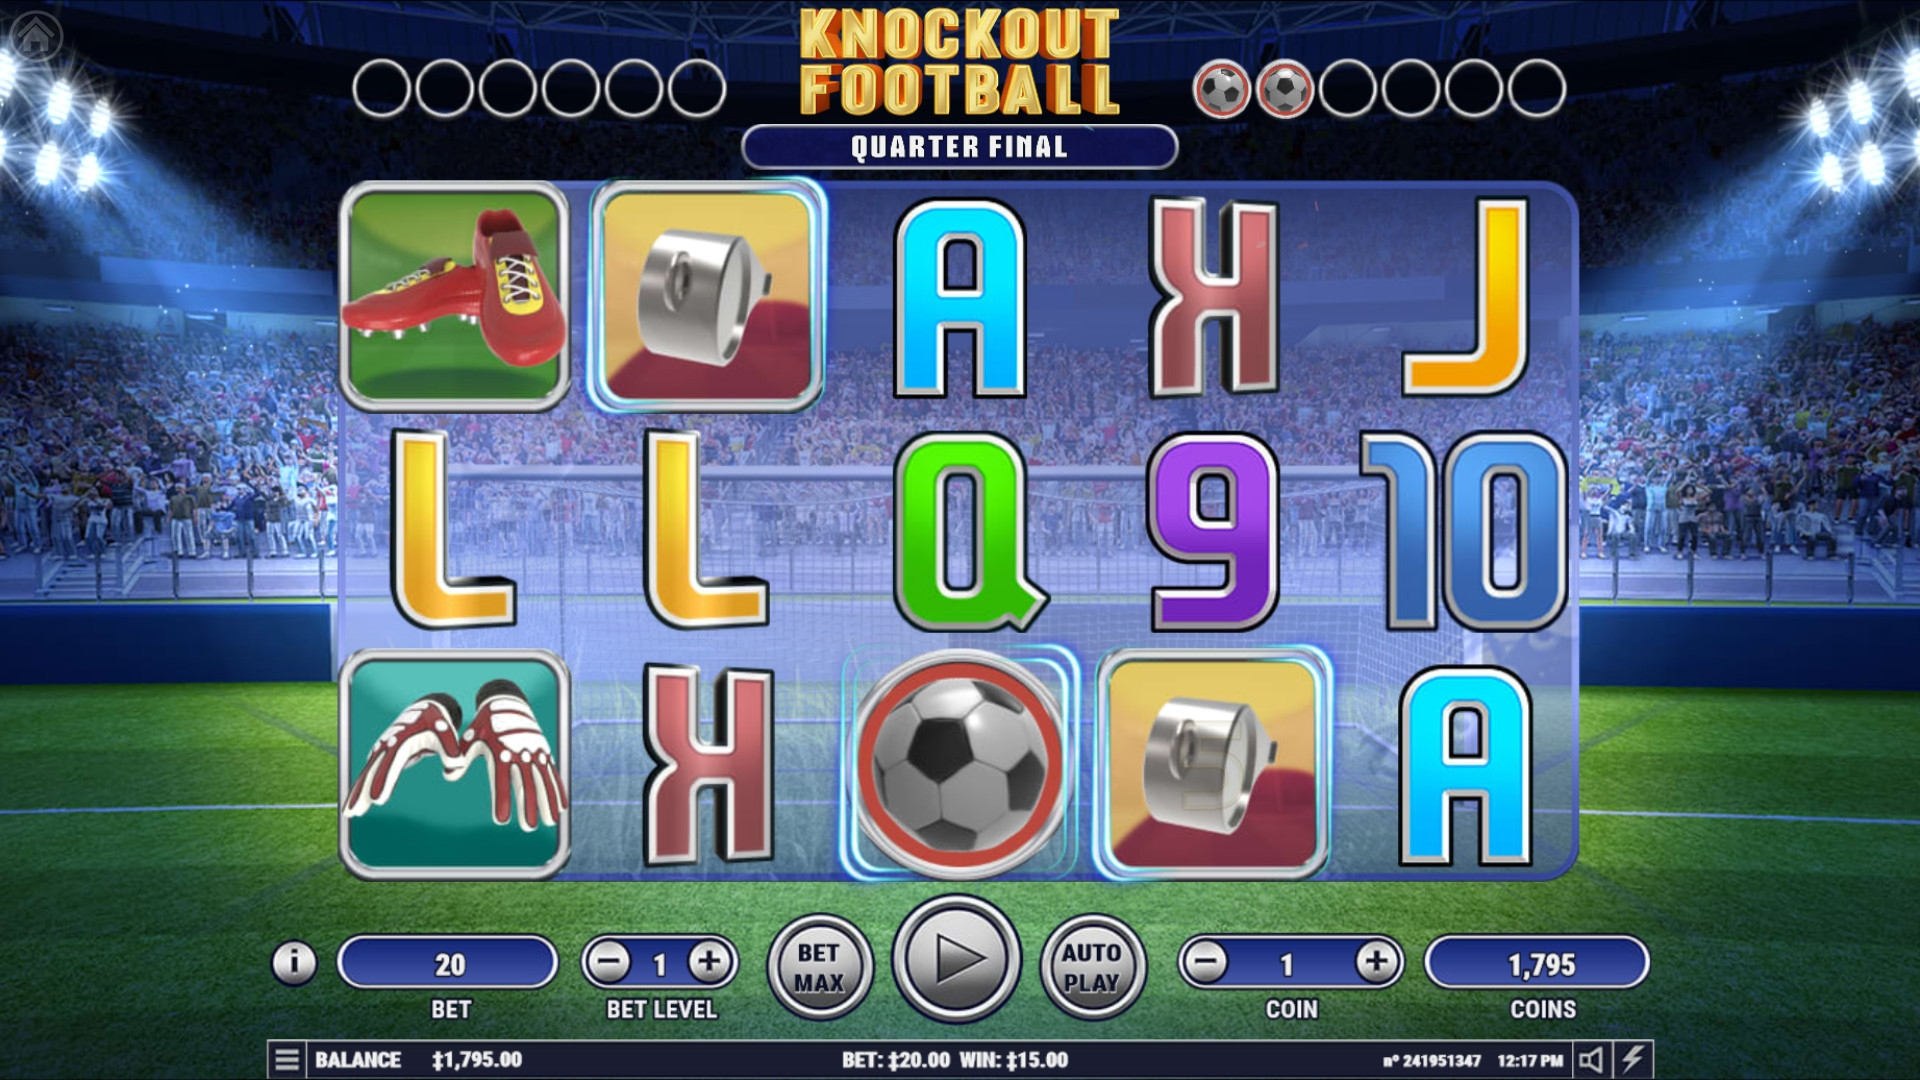 Knockout Football (Knockout Football) from category Slots